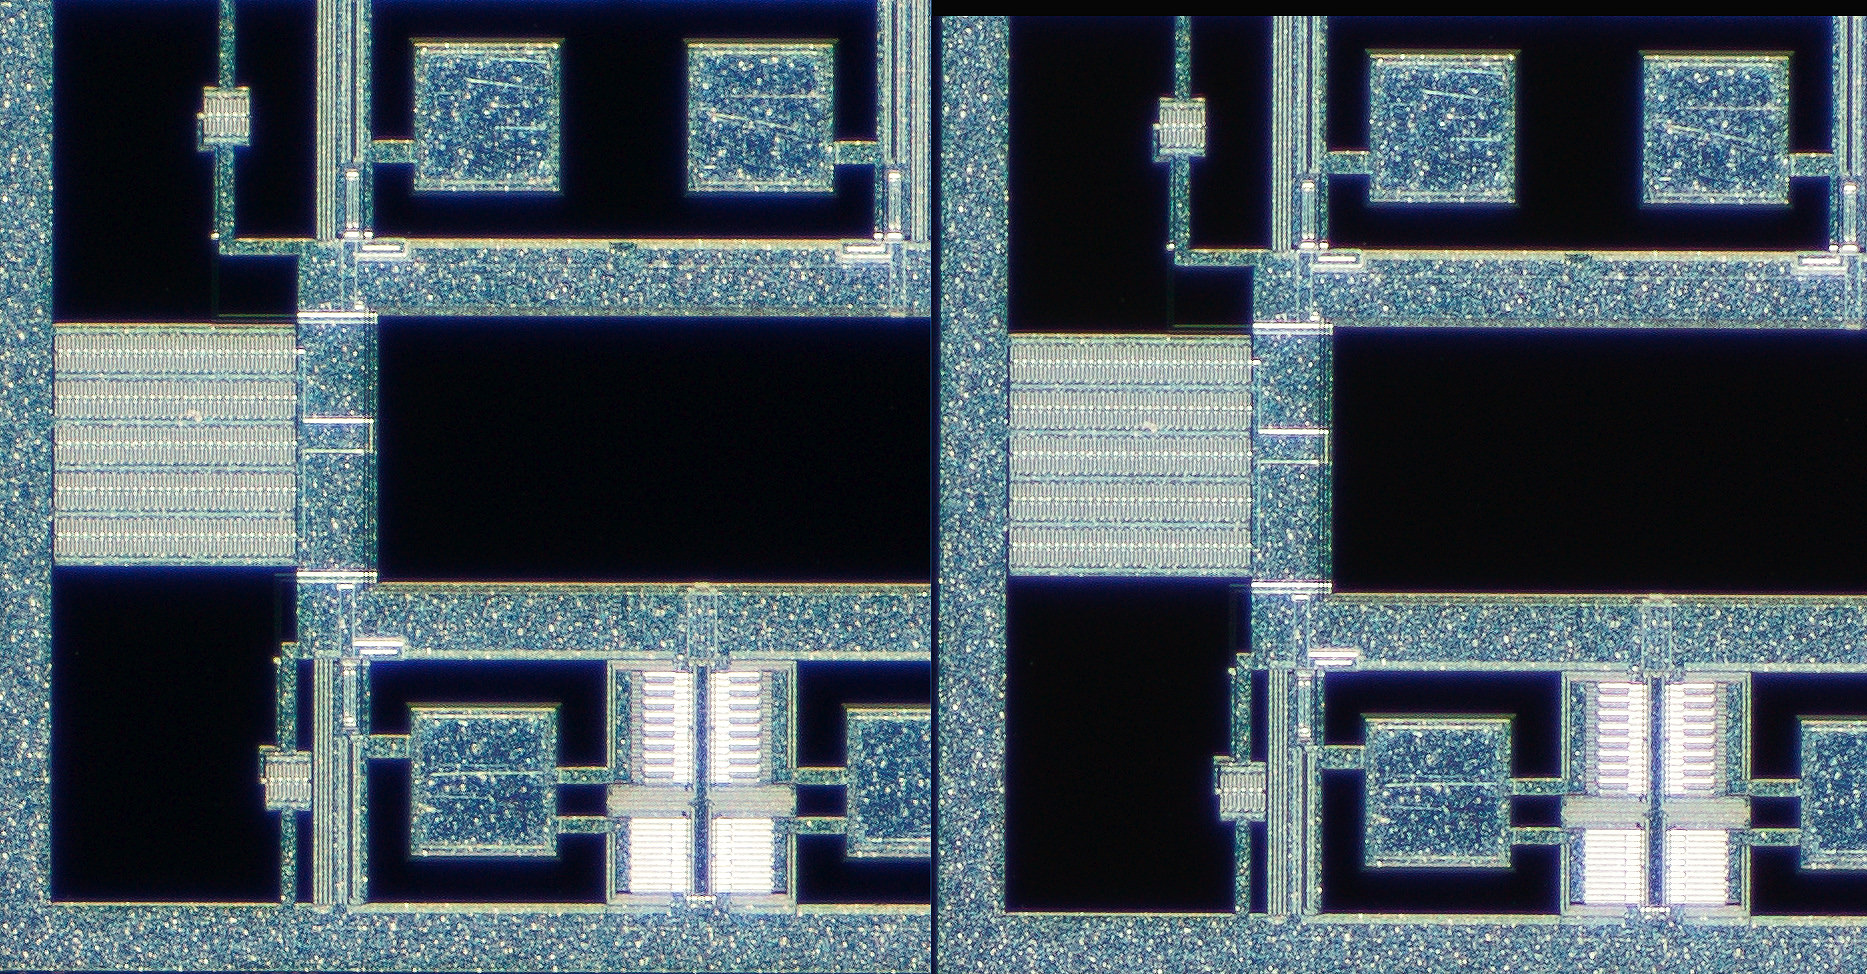 100% actual pixel off center crop with the Nikon Measuring Microscope 5x on the left and the 5xA on the right. Click on the image to see the full size version in a new window.